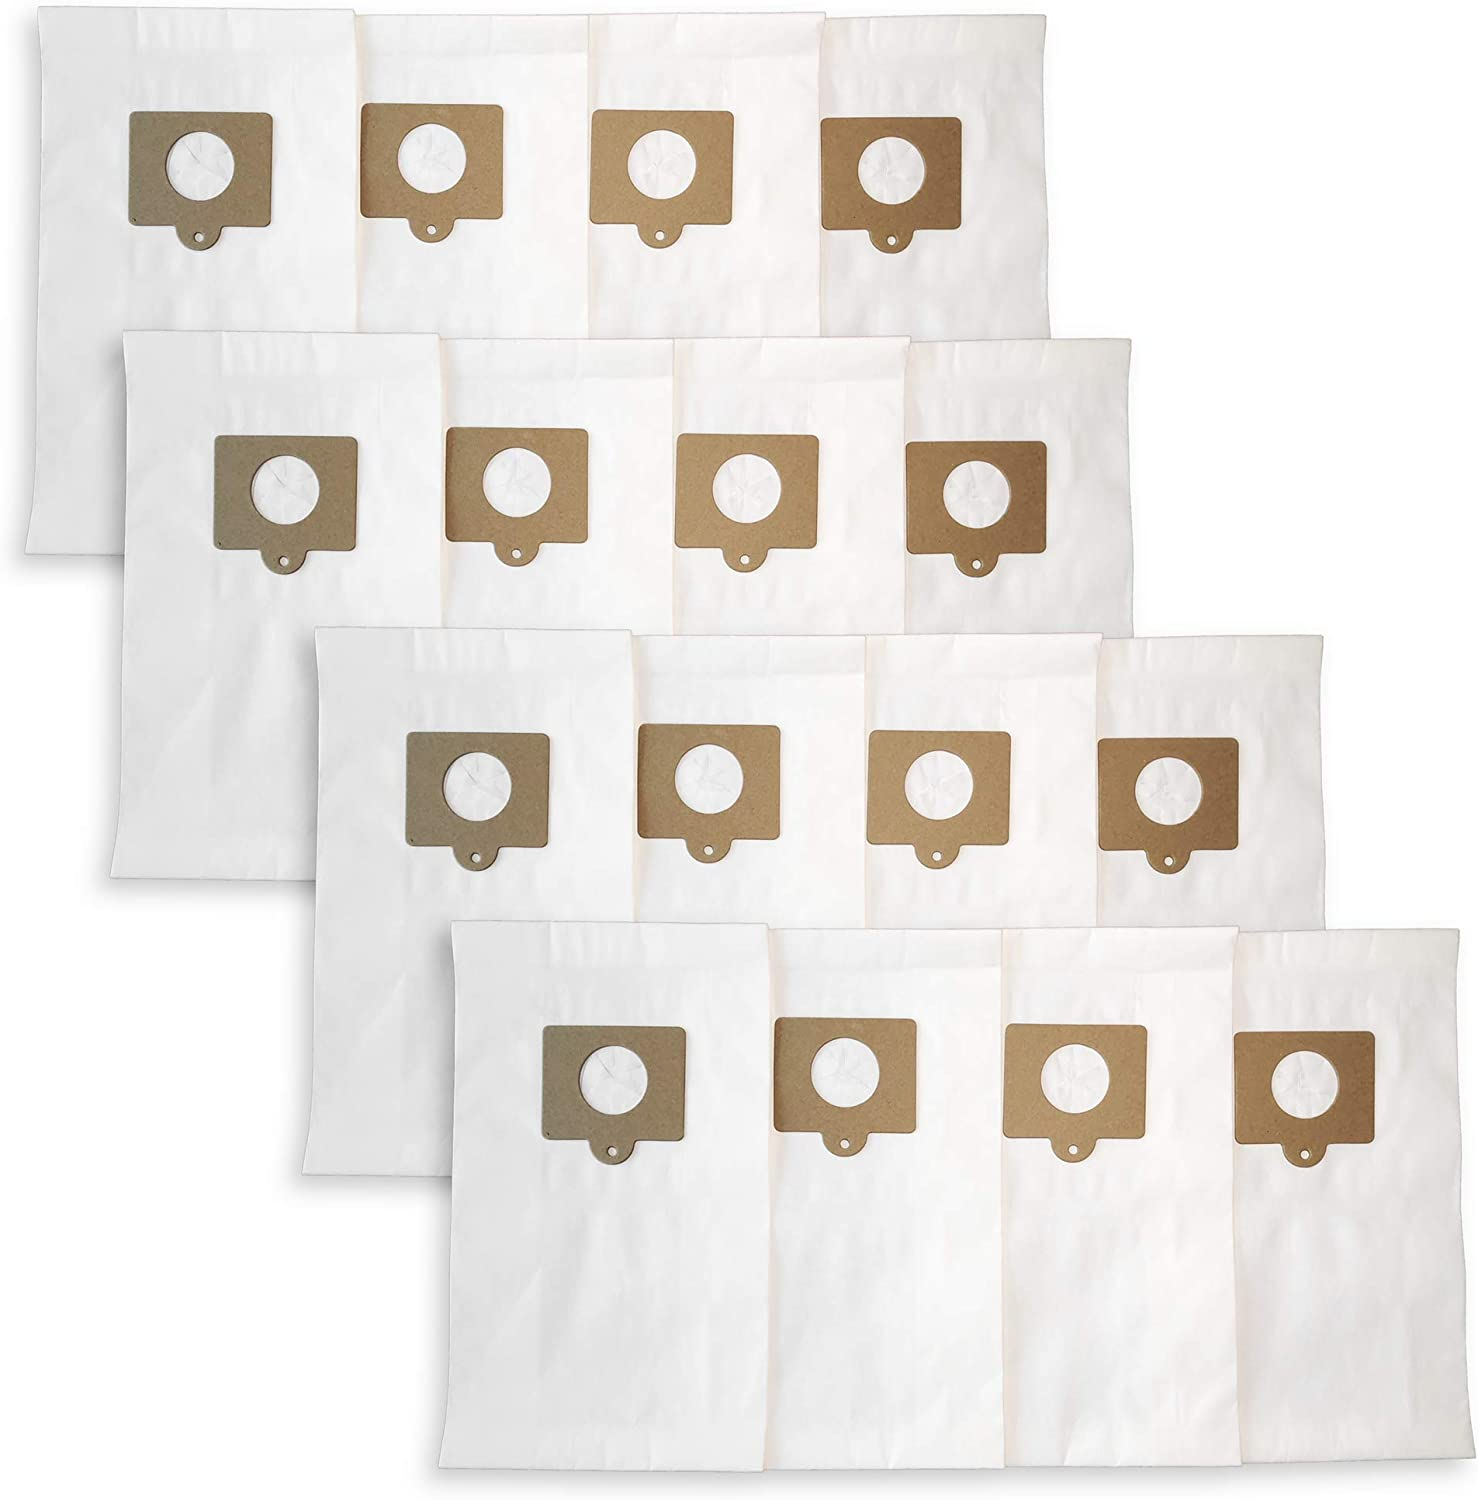 Reinlichkeit 16-Pack Generic Vacuum Bags fit Kenmore Style C/Q, Compatible with Models 5055,54321,50104,Also Panasonic C-5 C-18